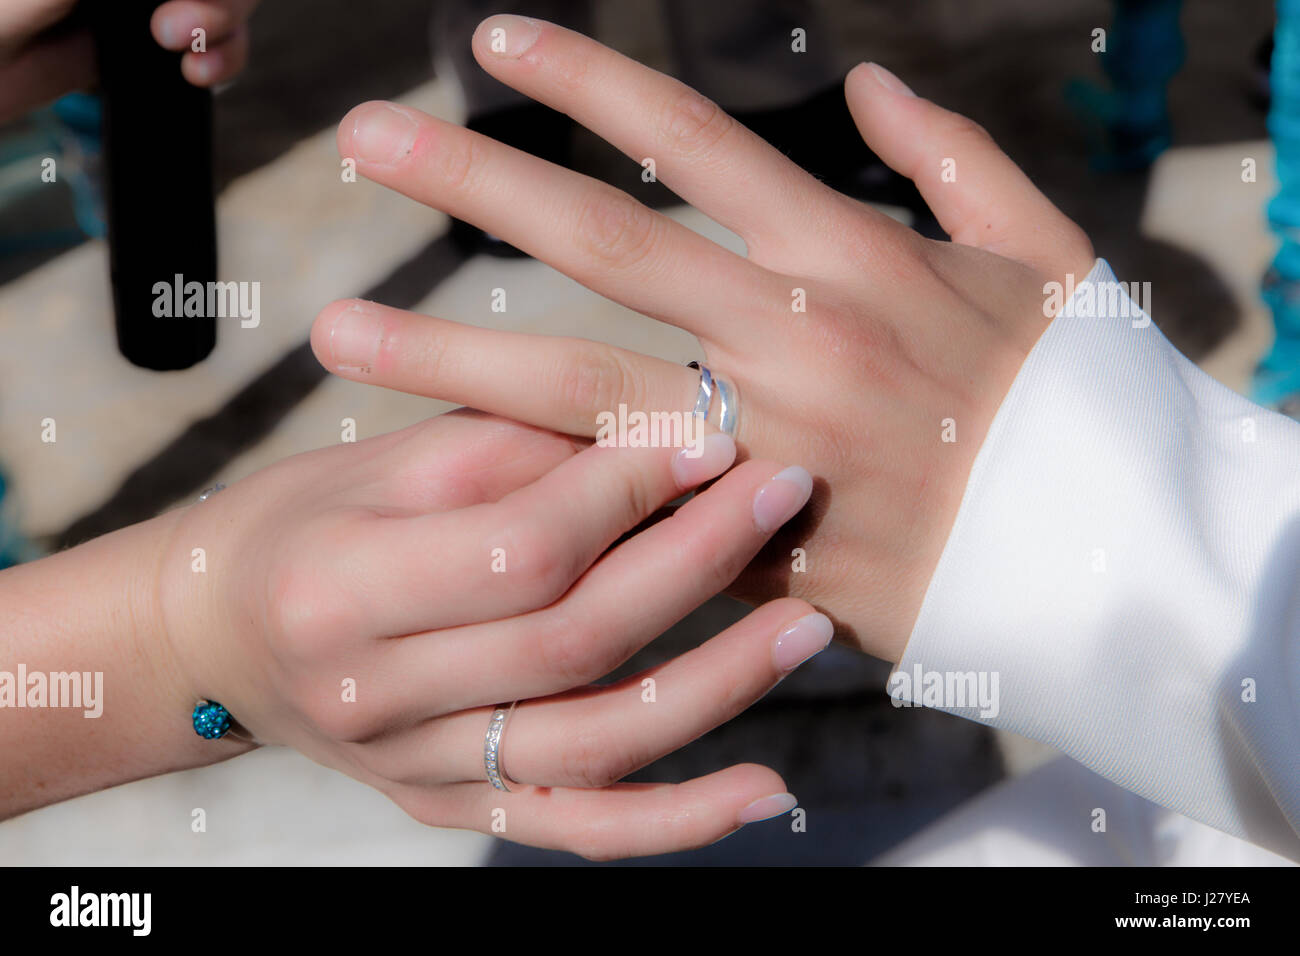 Bride Hand Diamond Ring On Stock Photos & Bride Hand Diamond Ring On ...